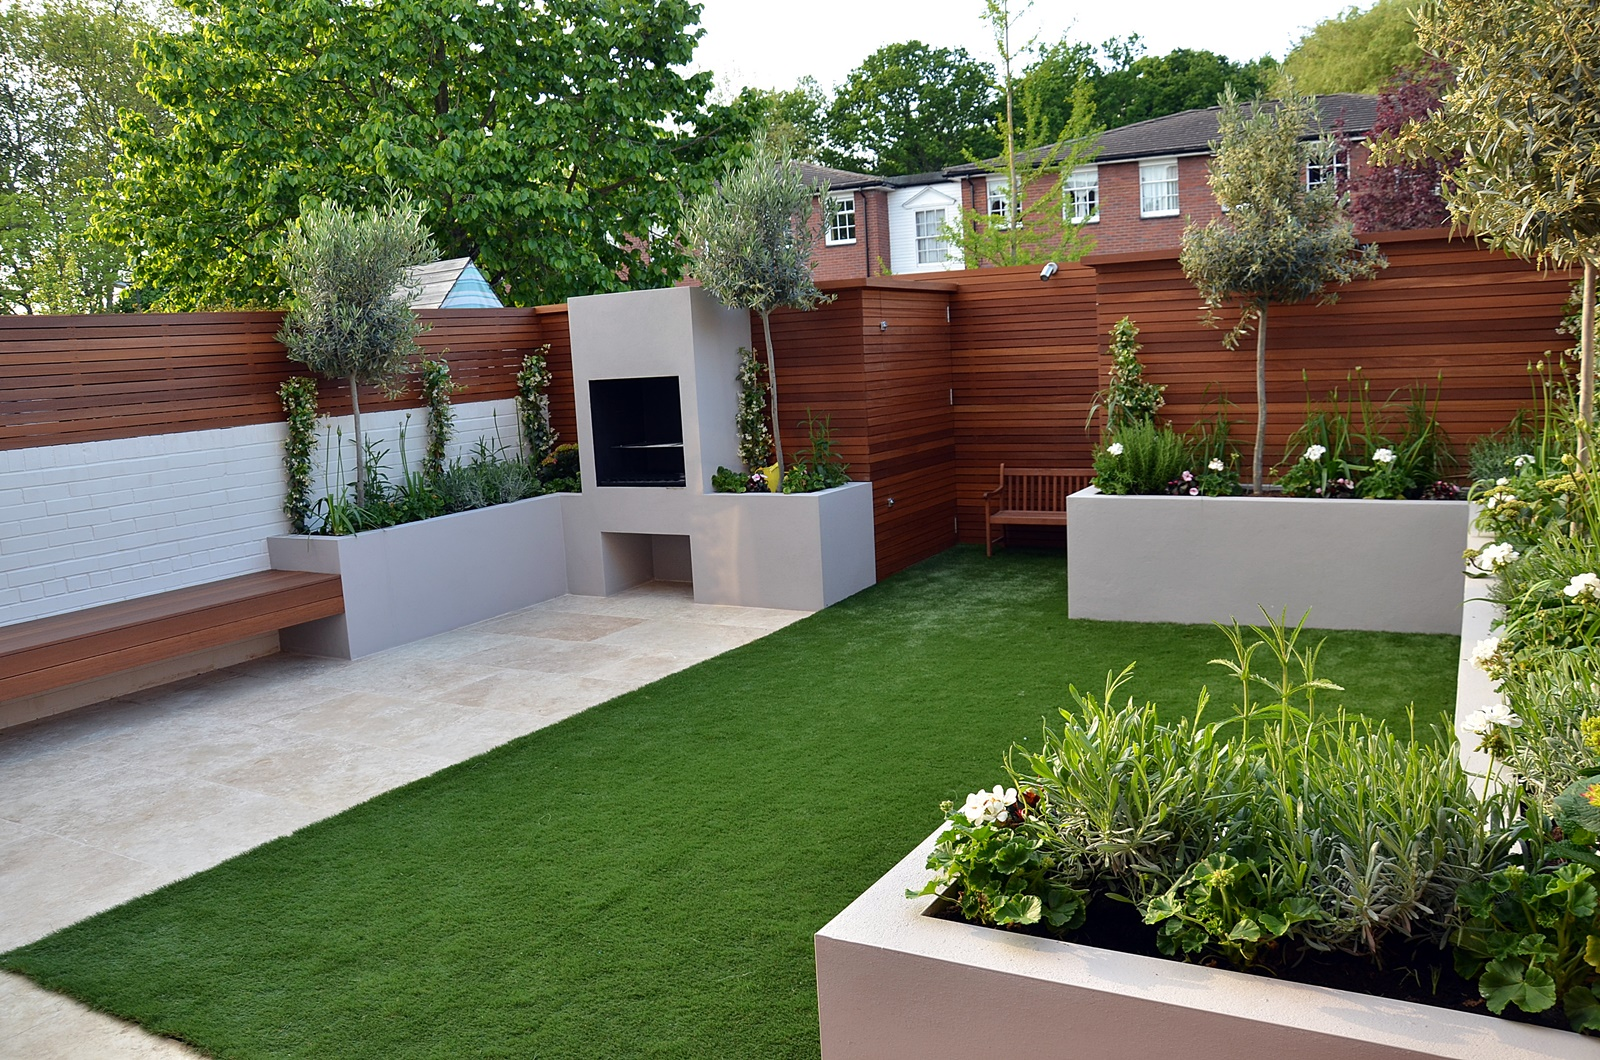 modern garden design fulham chelsea clapham battersea. Black Bedroom Furniture Sets. Home Design Ideas